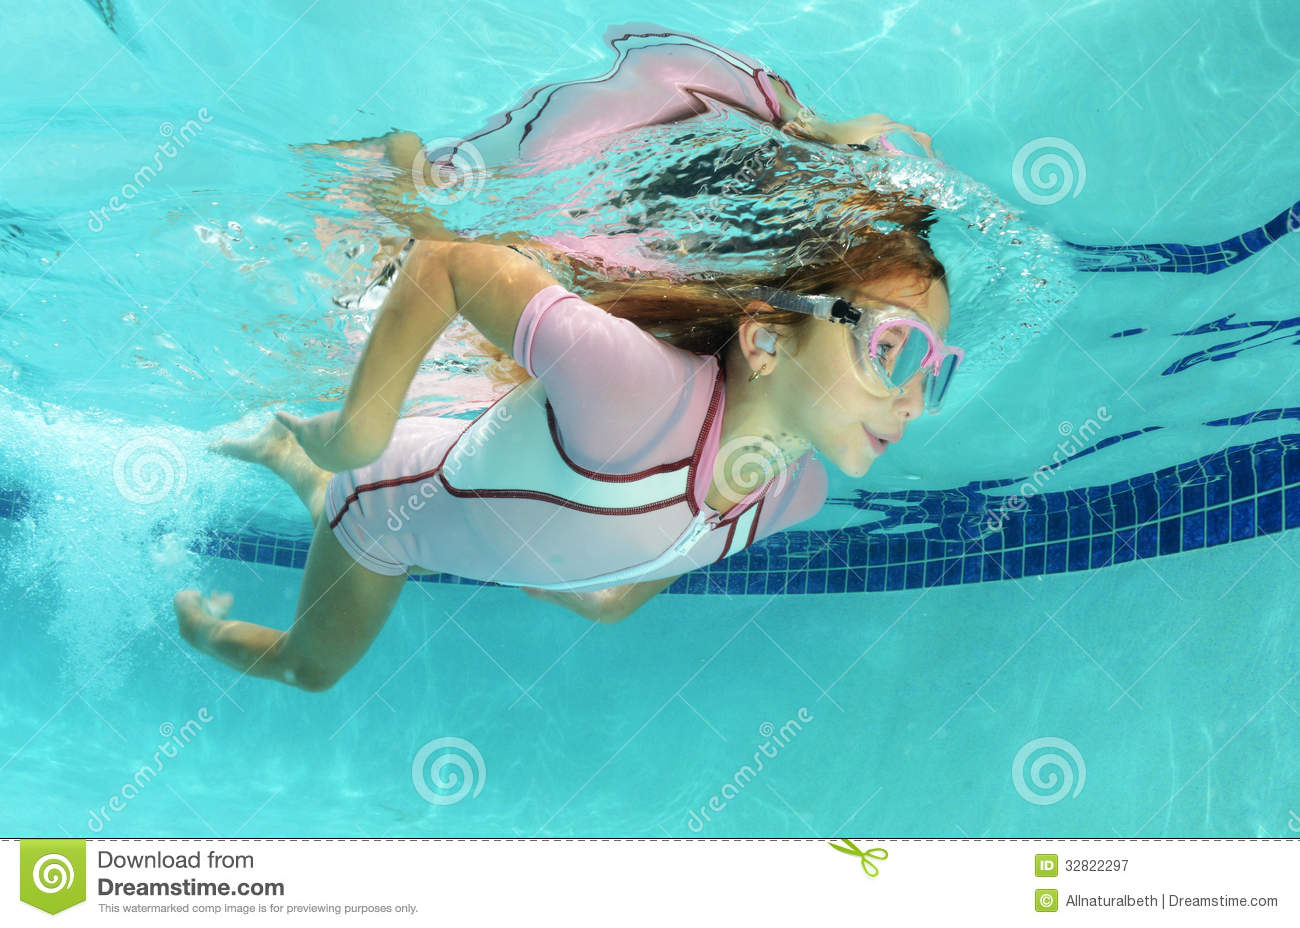 Kids Swimming Underwater cute kid swimming in pool royalty free stock photography - image